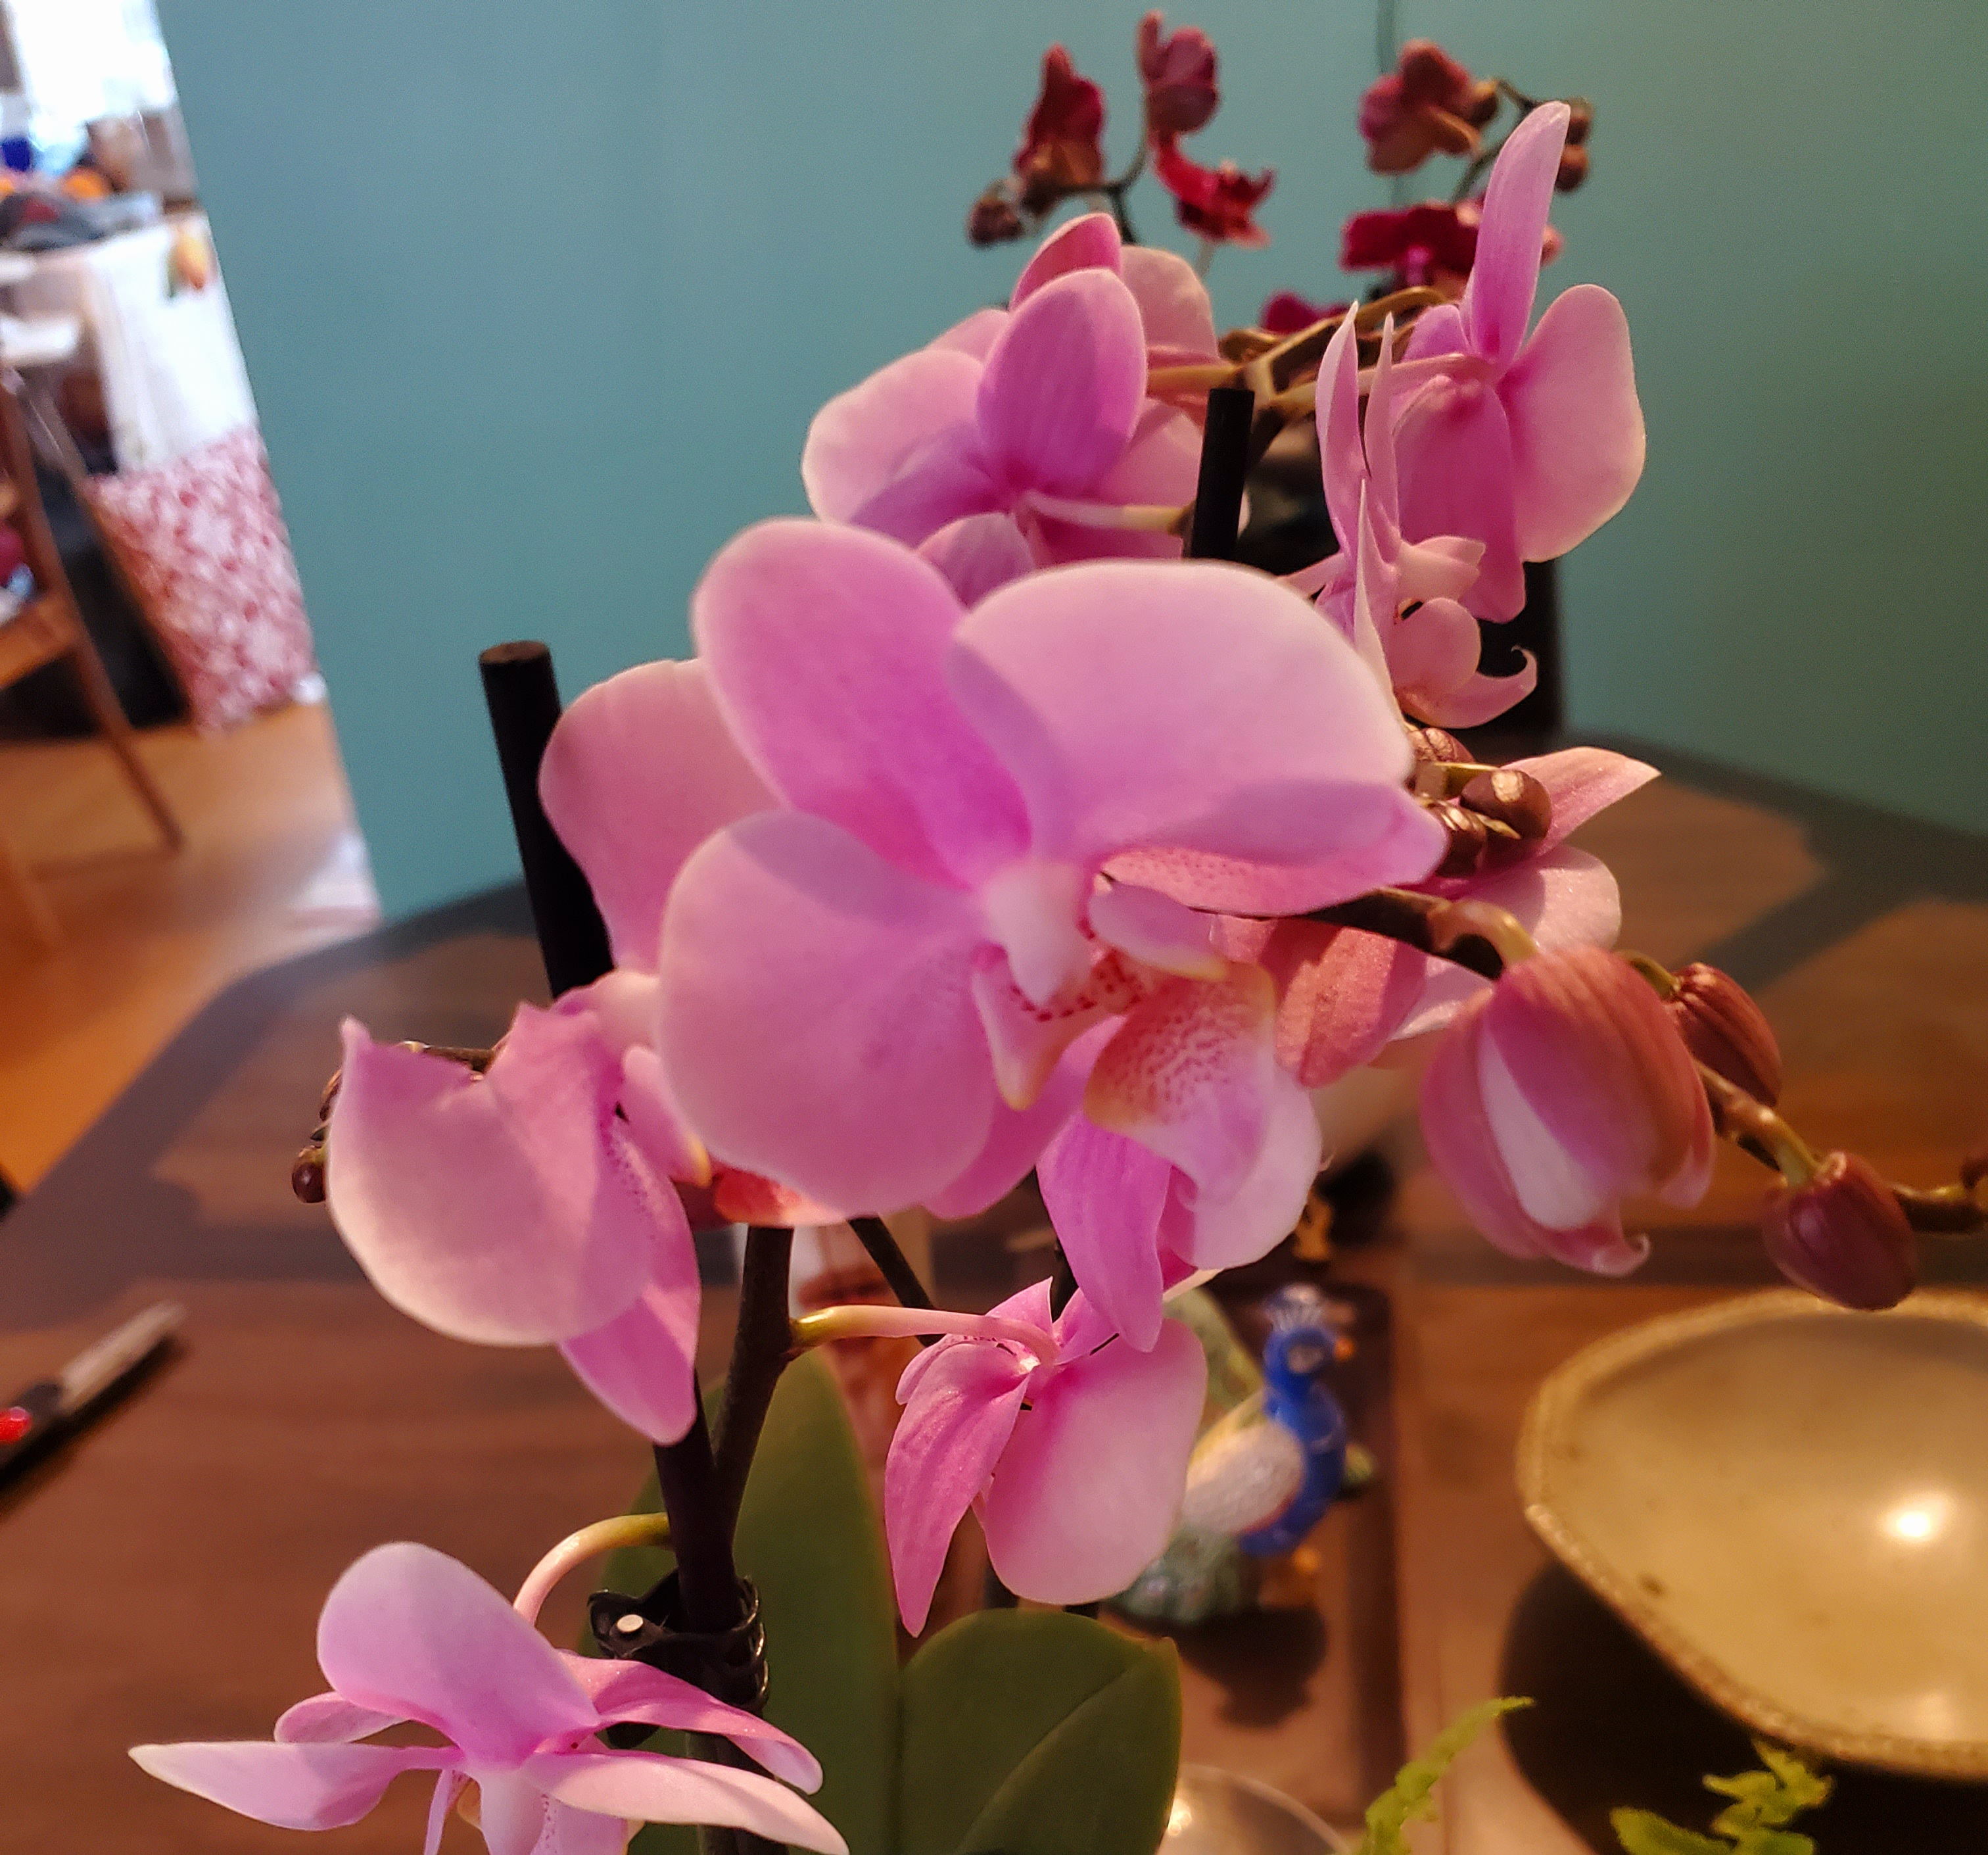 Who wouldn't smile at the thought of orchids arriving at their door for Mother's Day? (Image credit: Leon Kaye)